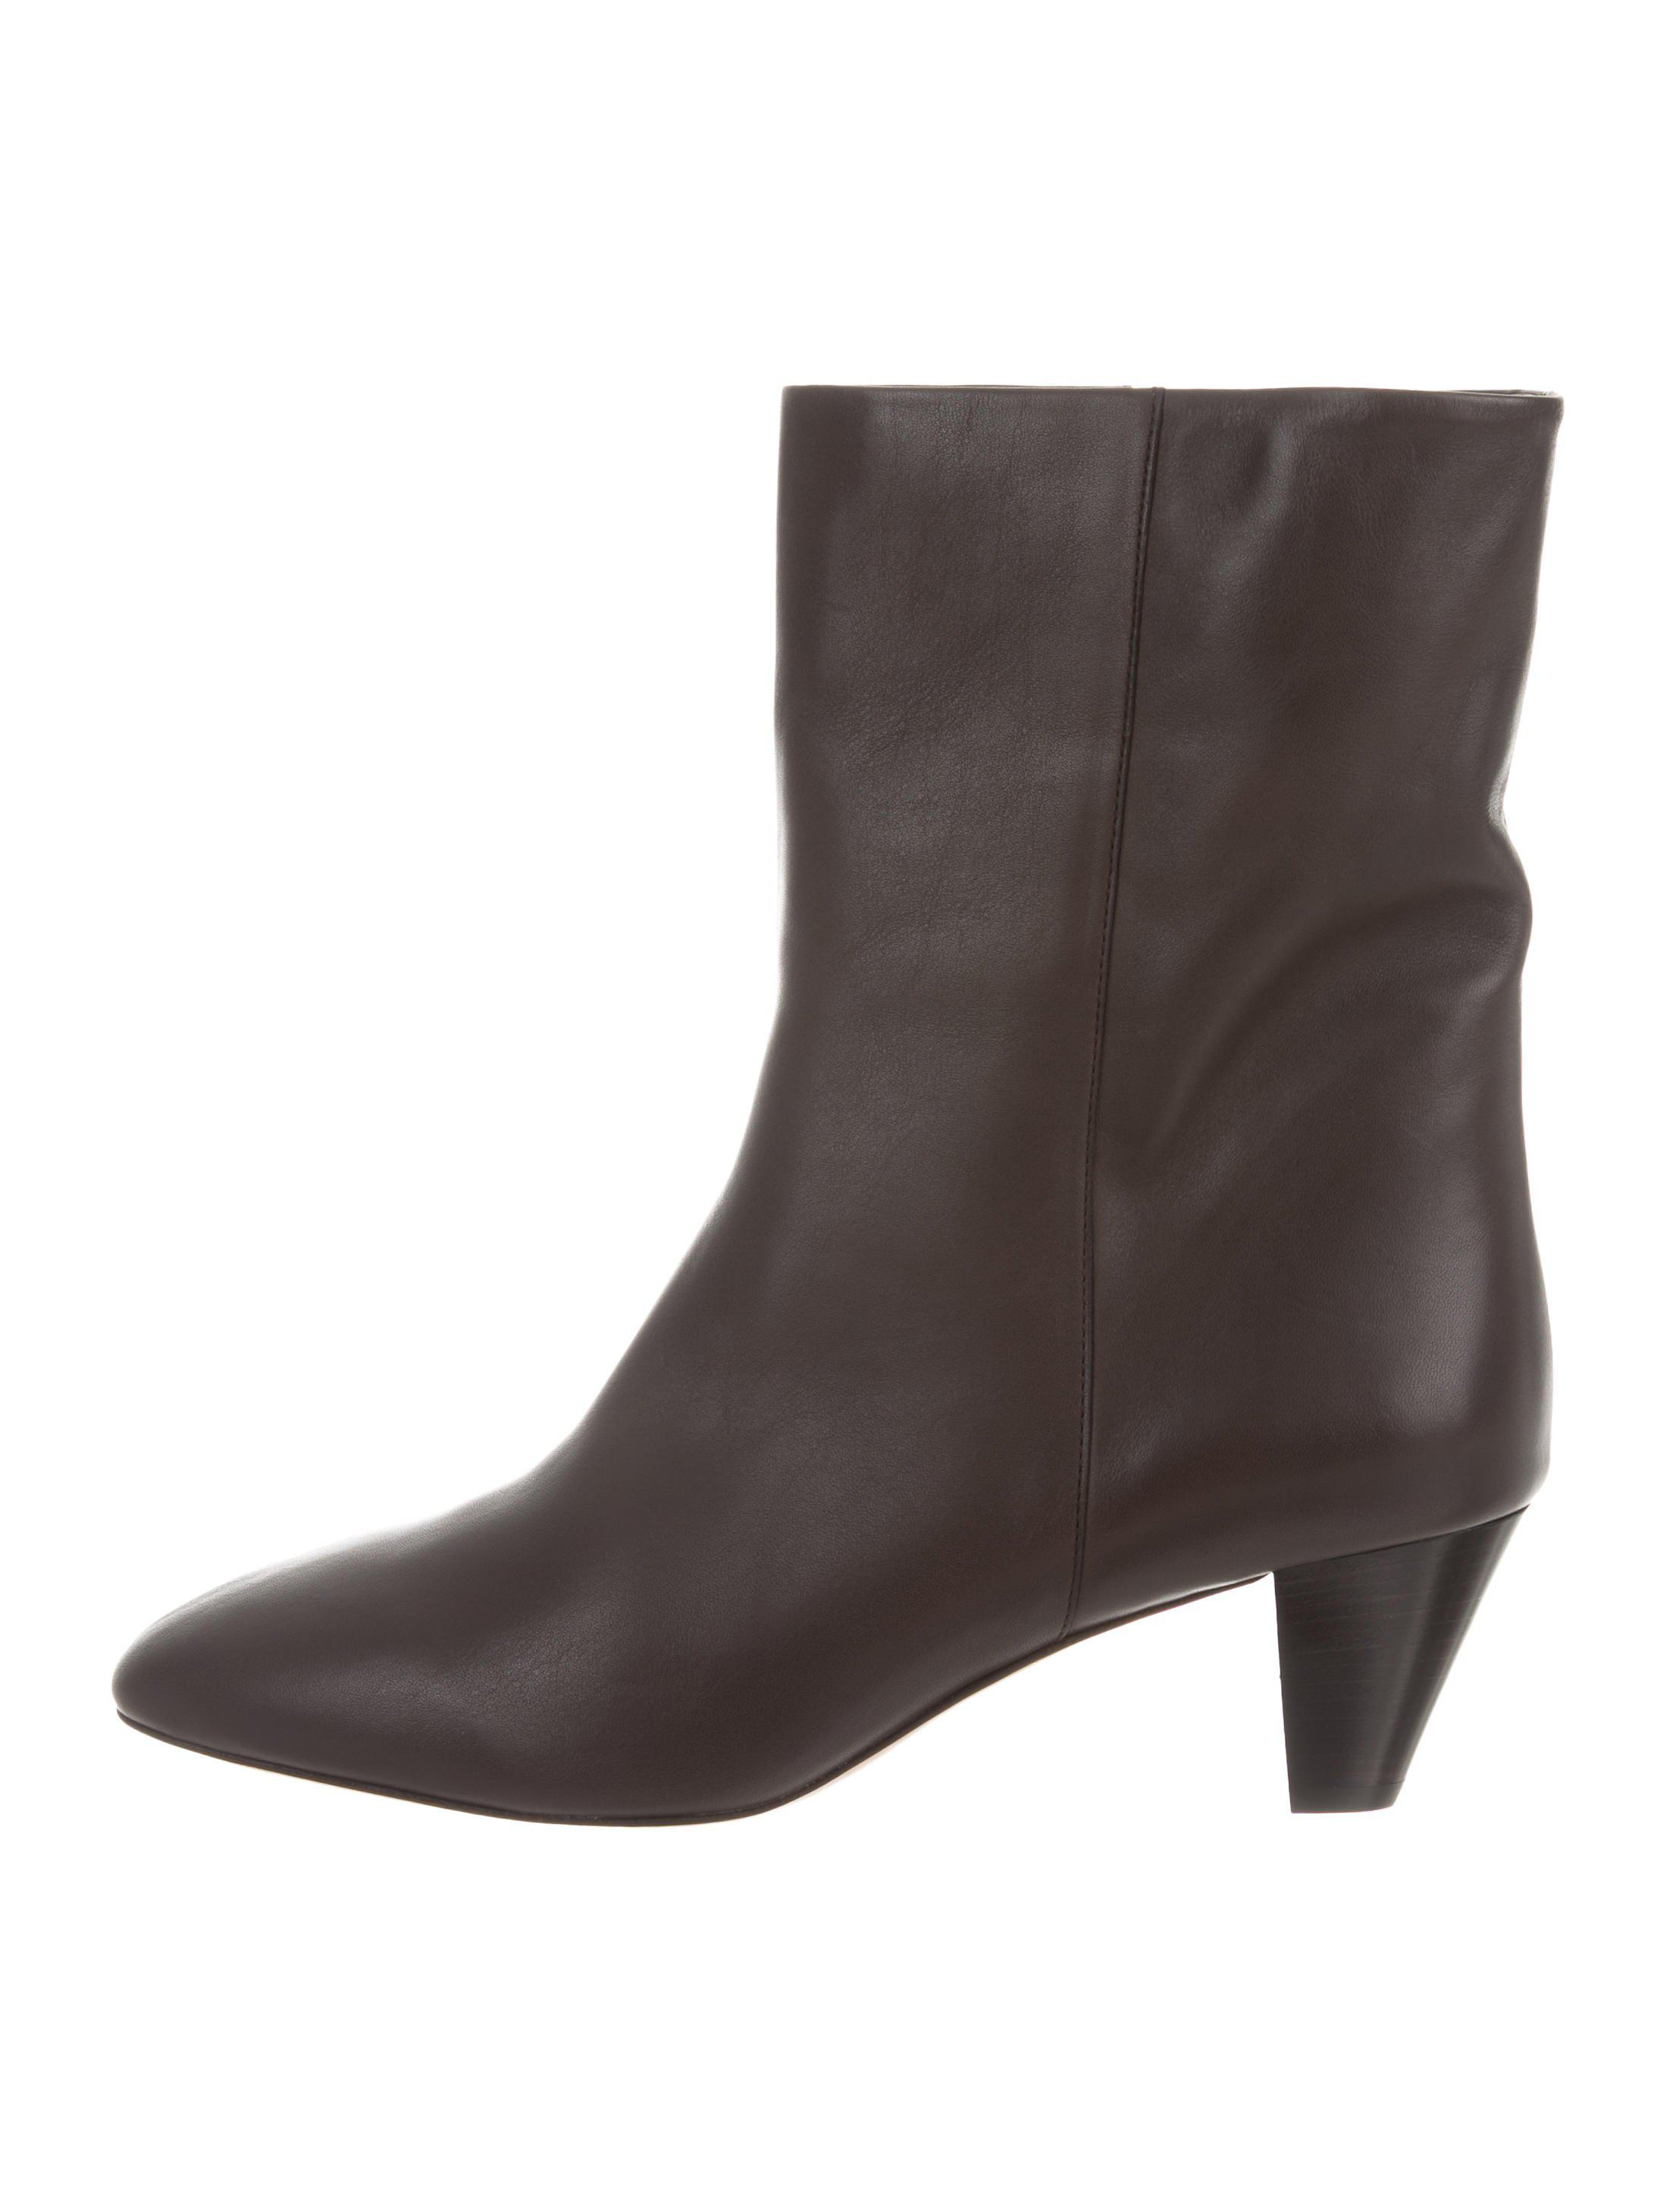 clearance wiki Isabel Marant Suede Round-Toe Mid-Calf Boots discount eastbay release dates authentic EPmIc689